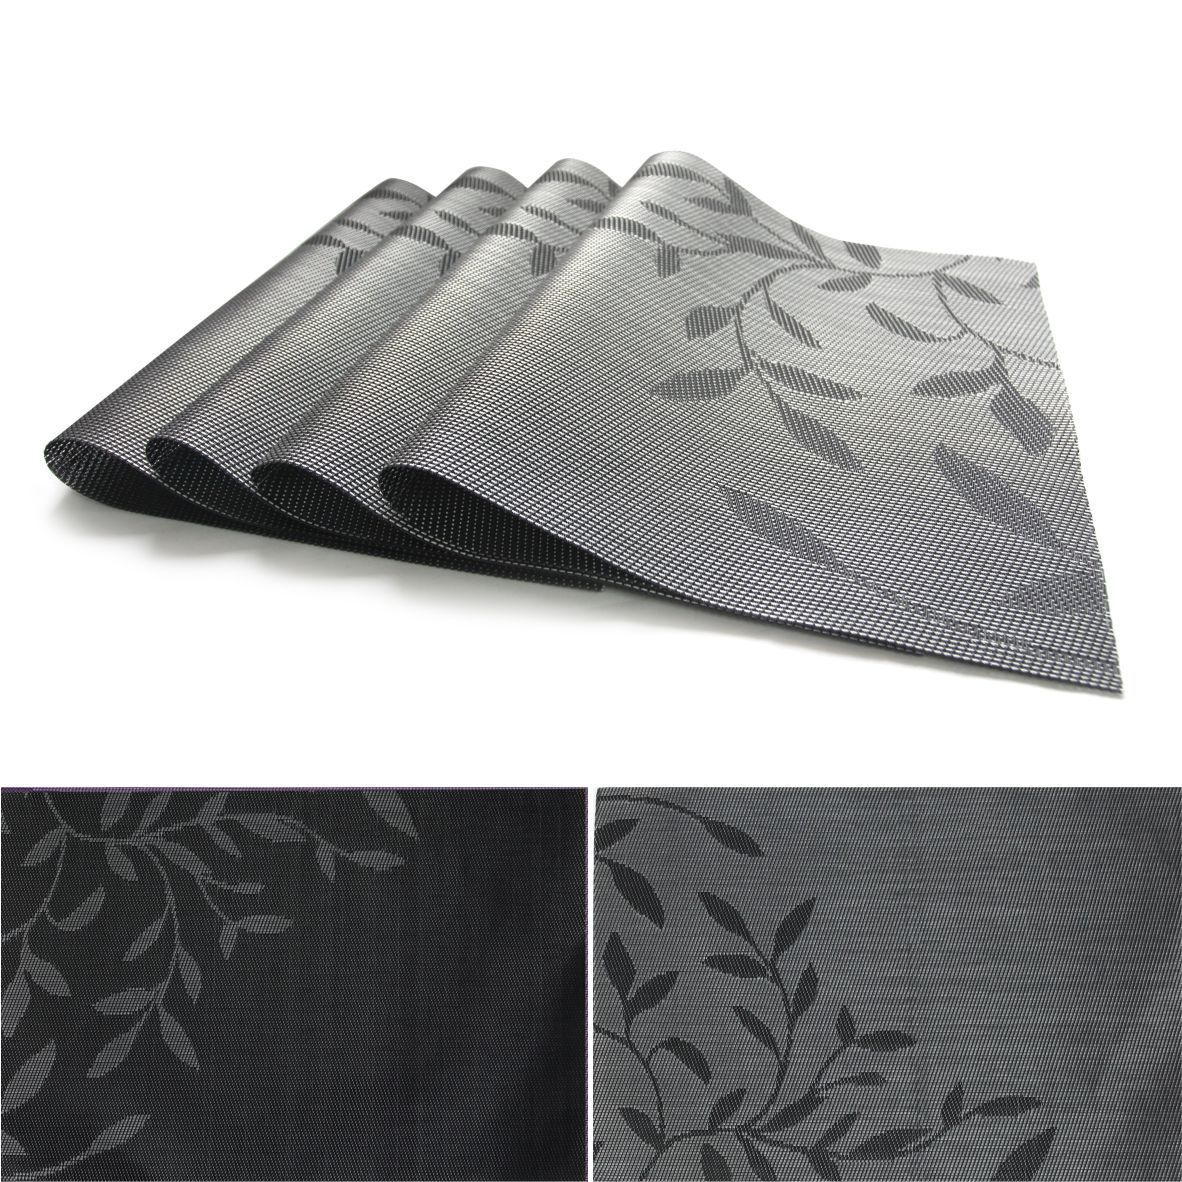 Factory Modern Style Heat Resistant Printed PVC Restaurant Table Placemats